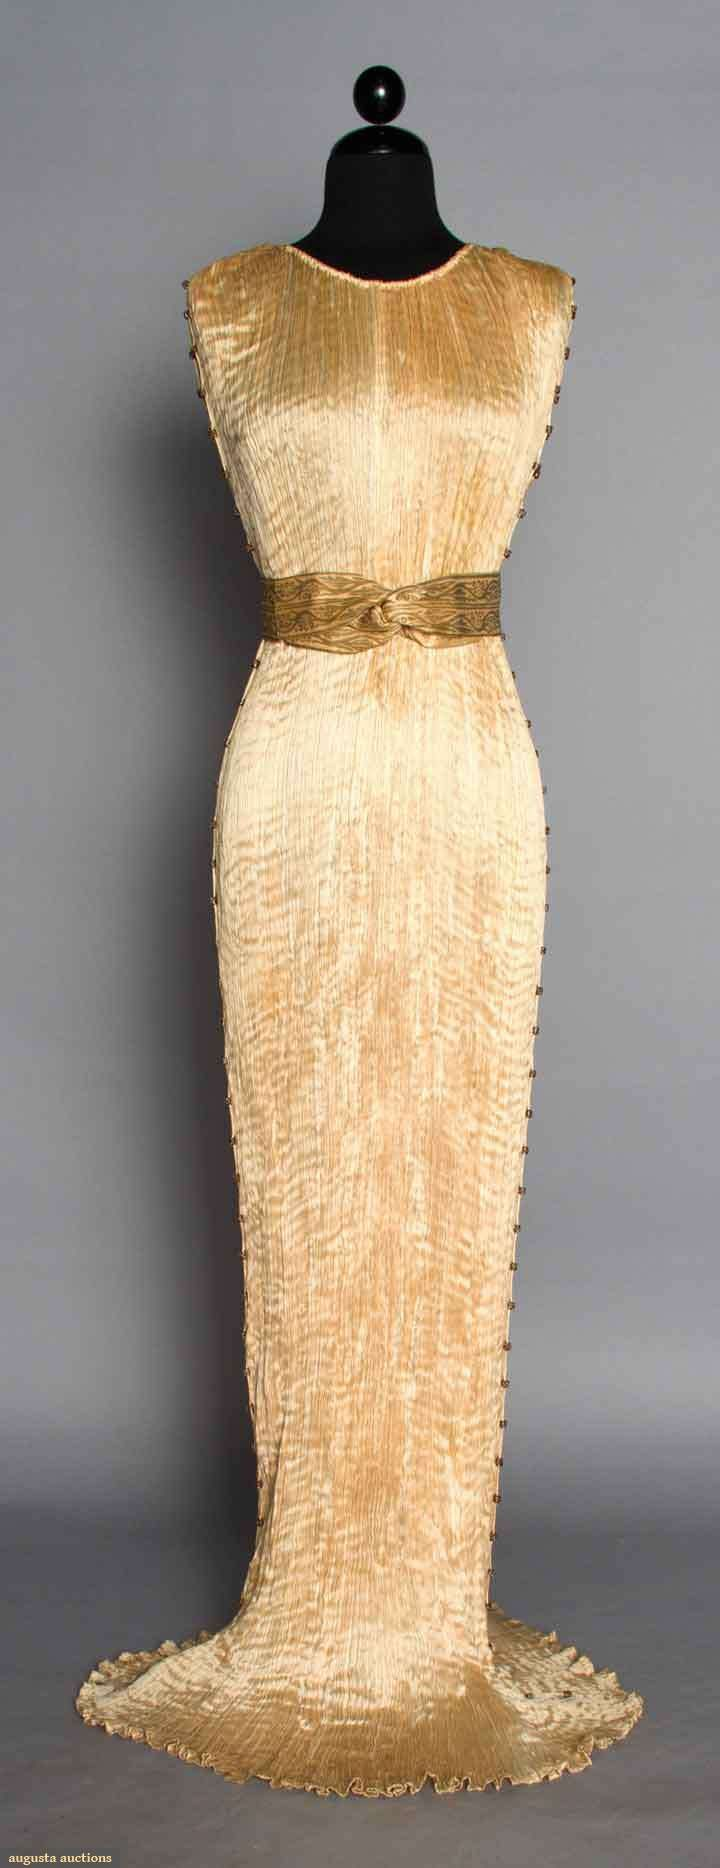 "FORTUNY SILK DELPHOS W/ BOX, 1920-1930s Blond silk pleated sleeveless gown, Murano amber & white glass side seam beads, stencilled cotton sateen 2"" belt, dress & belt labeled, L 59"", (hem area dingy & few tiny spots) pleats all tight, excellent; original round cardbox box, black ribbon ties w/ glass beads, round label on lid ""Mariano Fortuny Venise 509 Madison Ave. New York, N.Y."", 8"" x 5.5"", (lid damaged) fair."